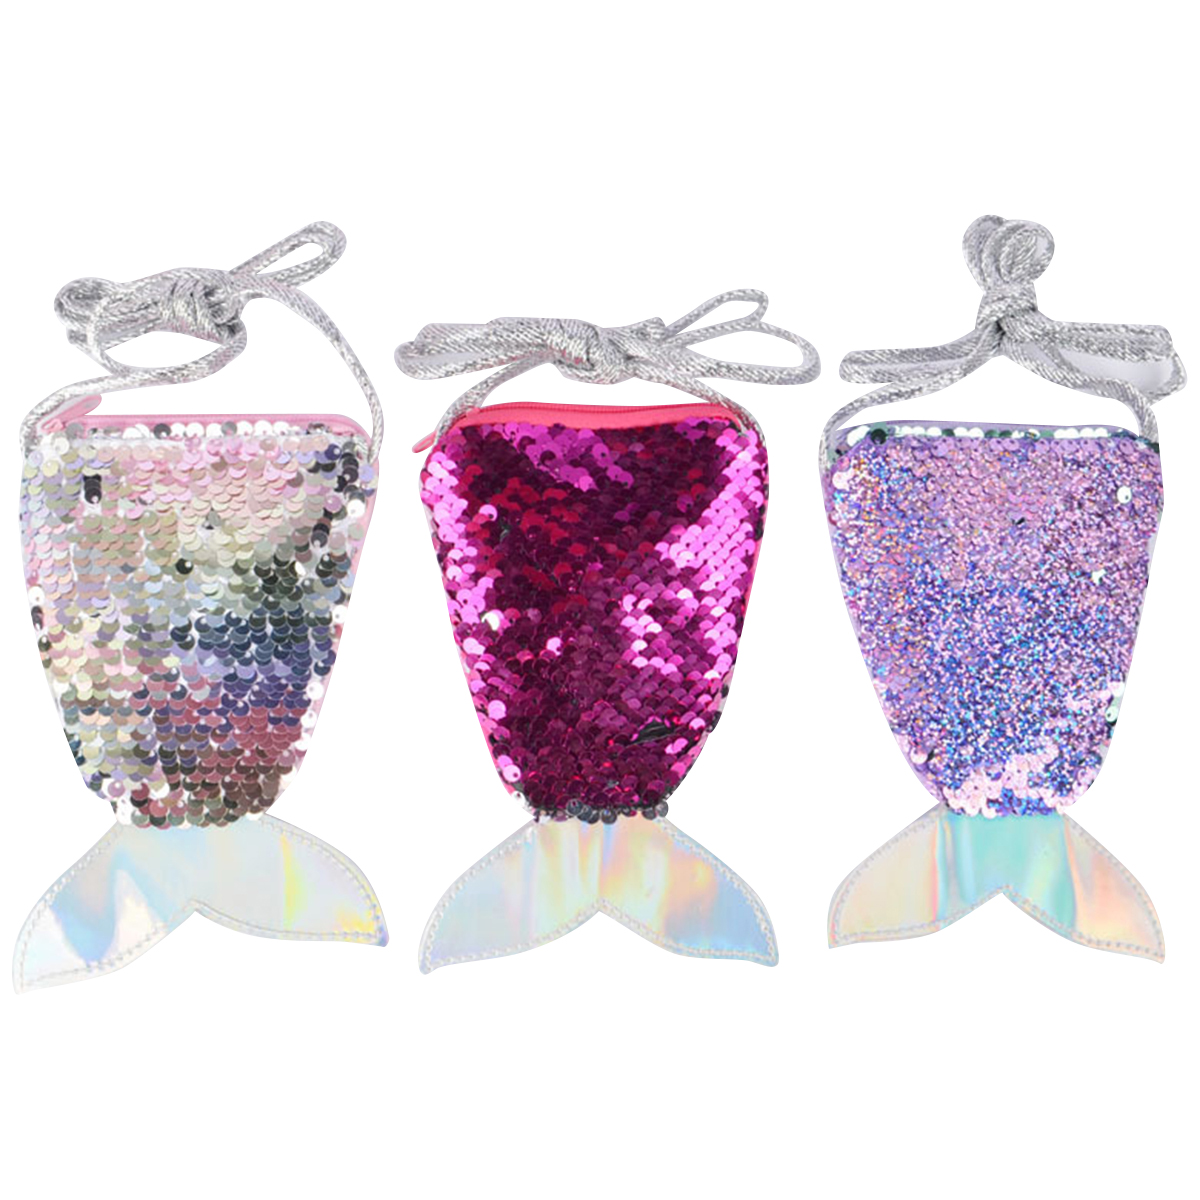 2019 Women Coin Purse Earphone Pouch Cute Bling Sequins Small Mini Money Wallet Bags Kids Zipper Purse Bag Gift With String